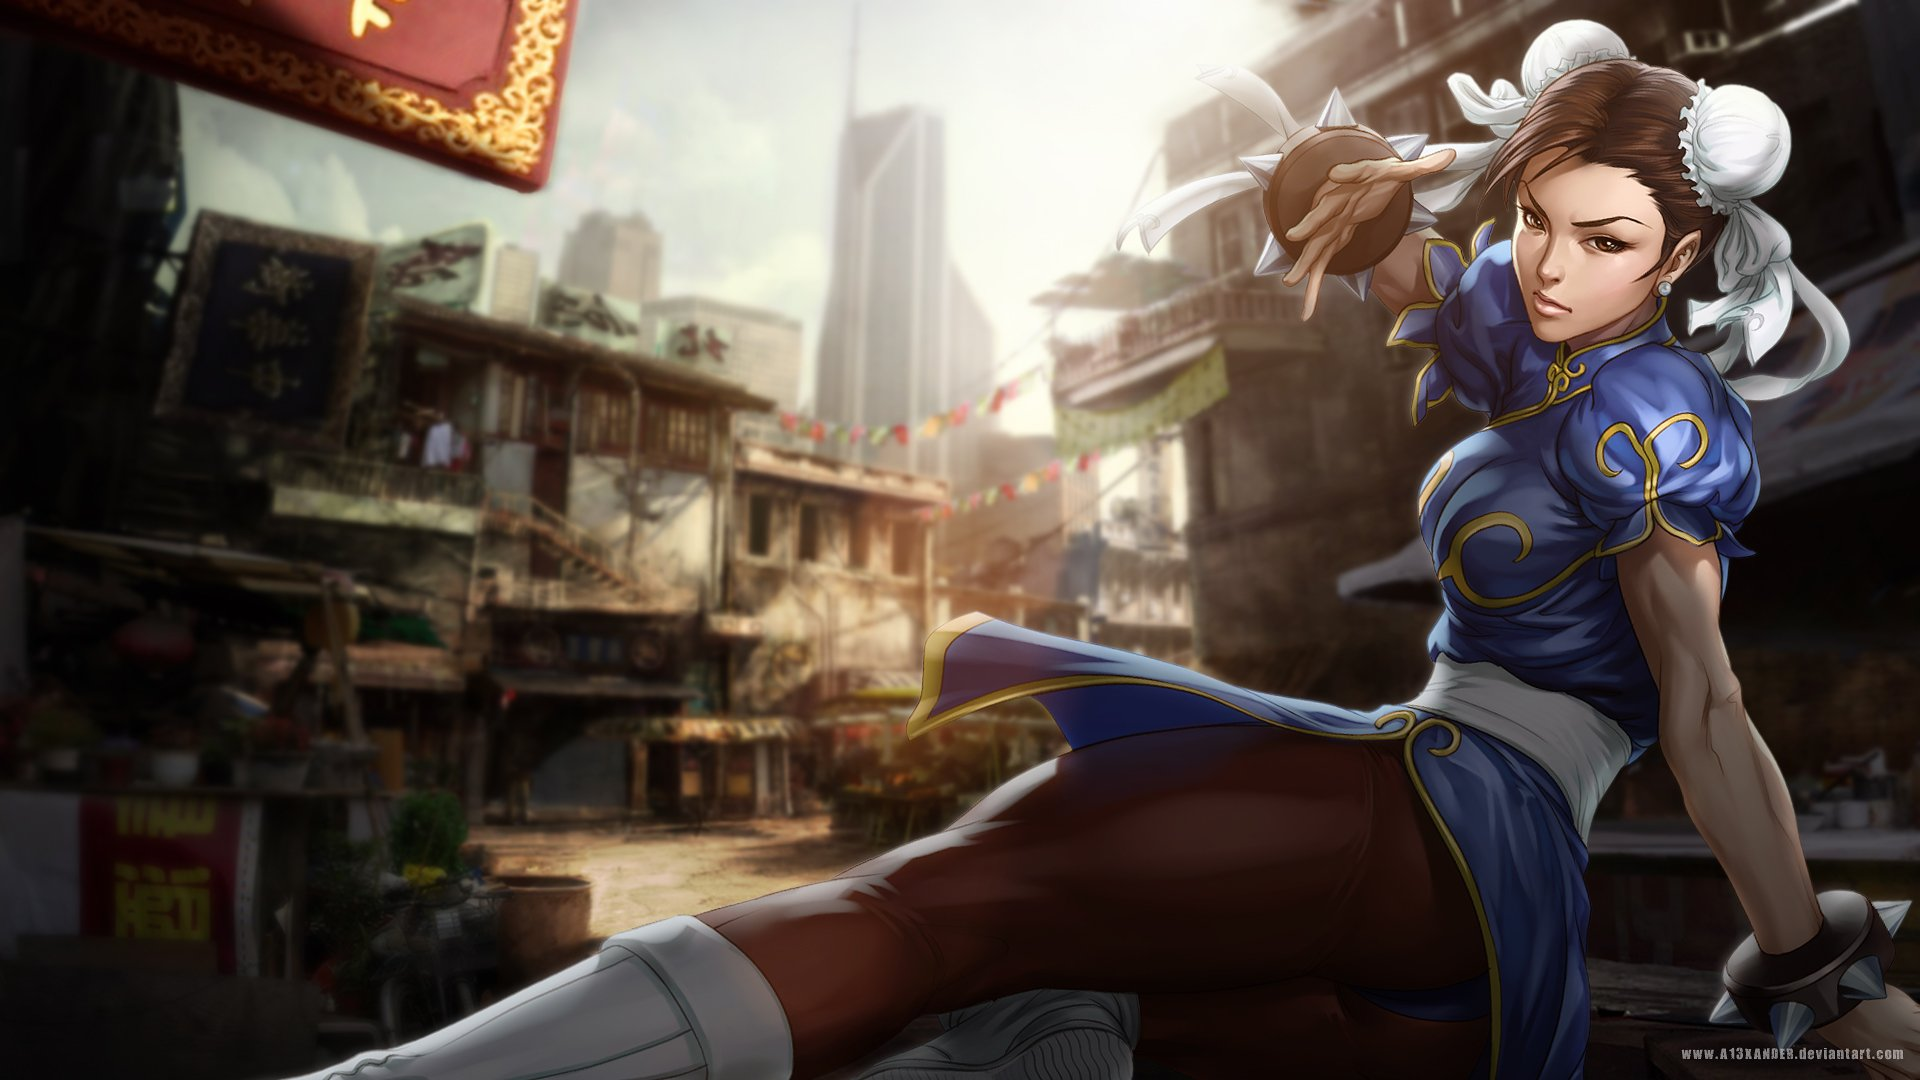 39 Chun Li Wallpaper Hd On Wallpapersafari